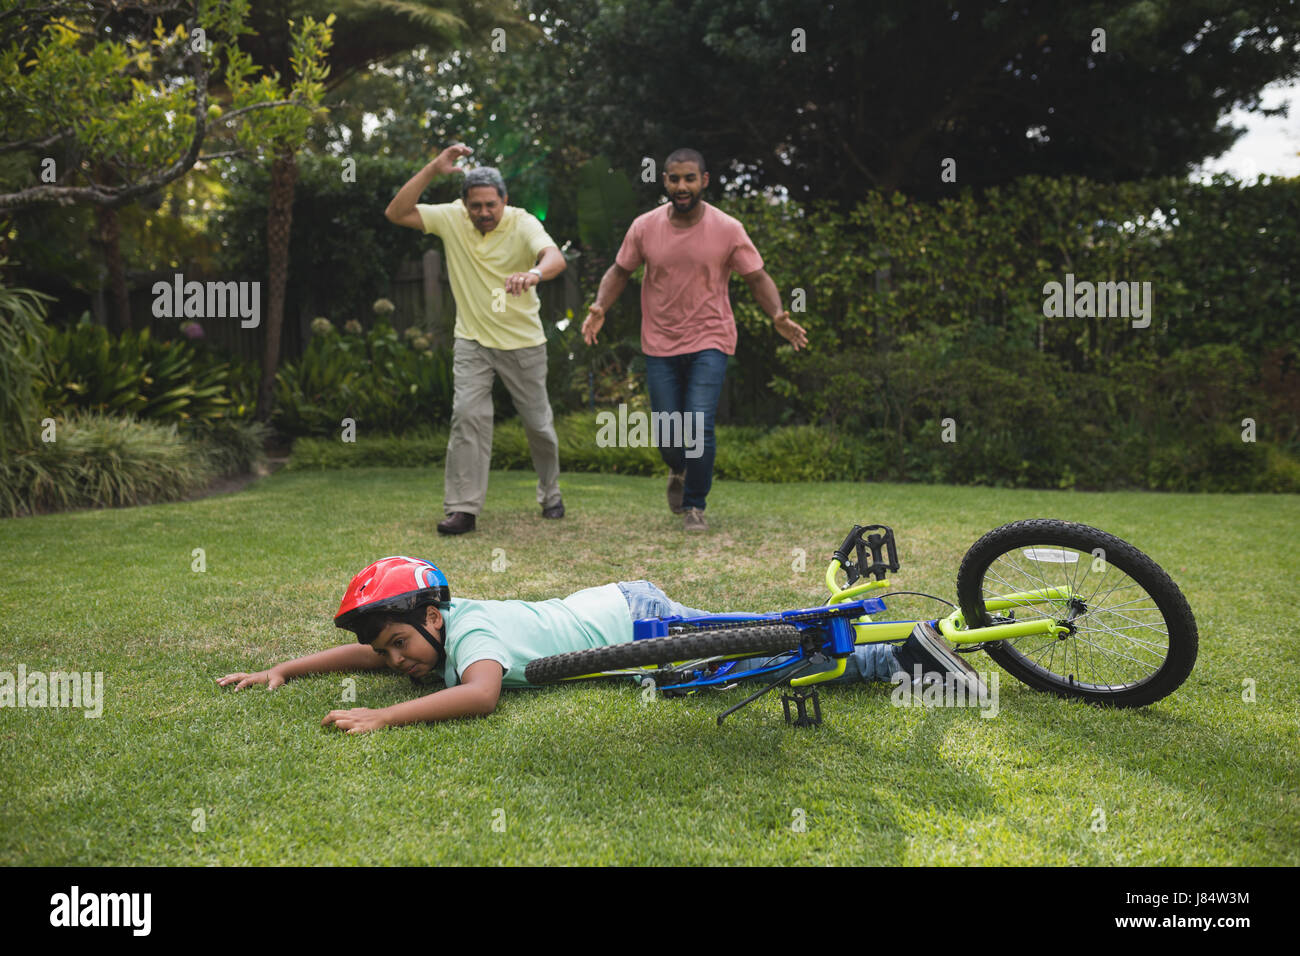 Grandfather and father running towards fallen boy with bicycle at park - Stock Image